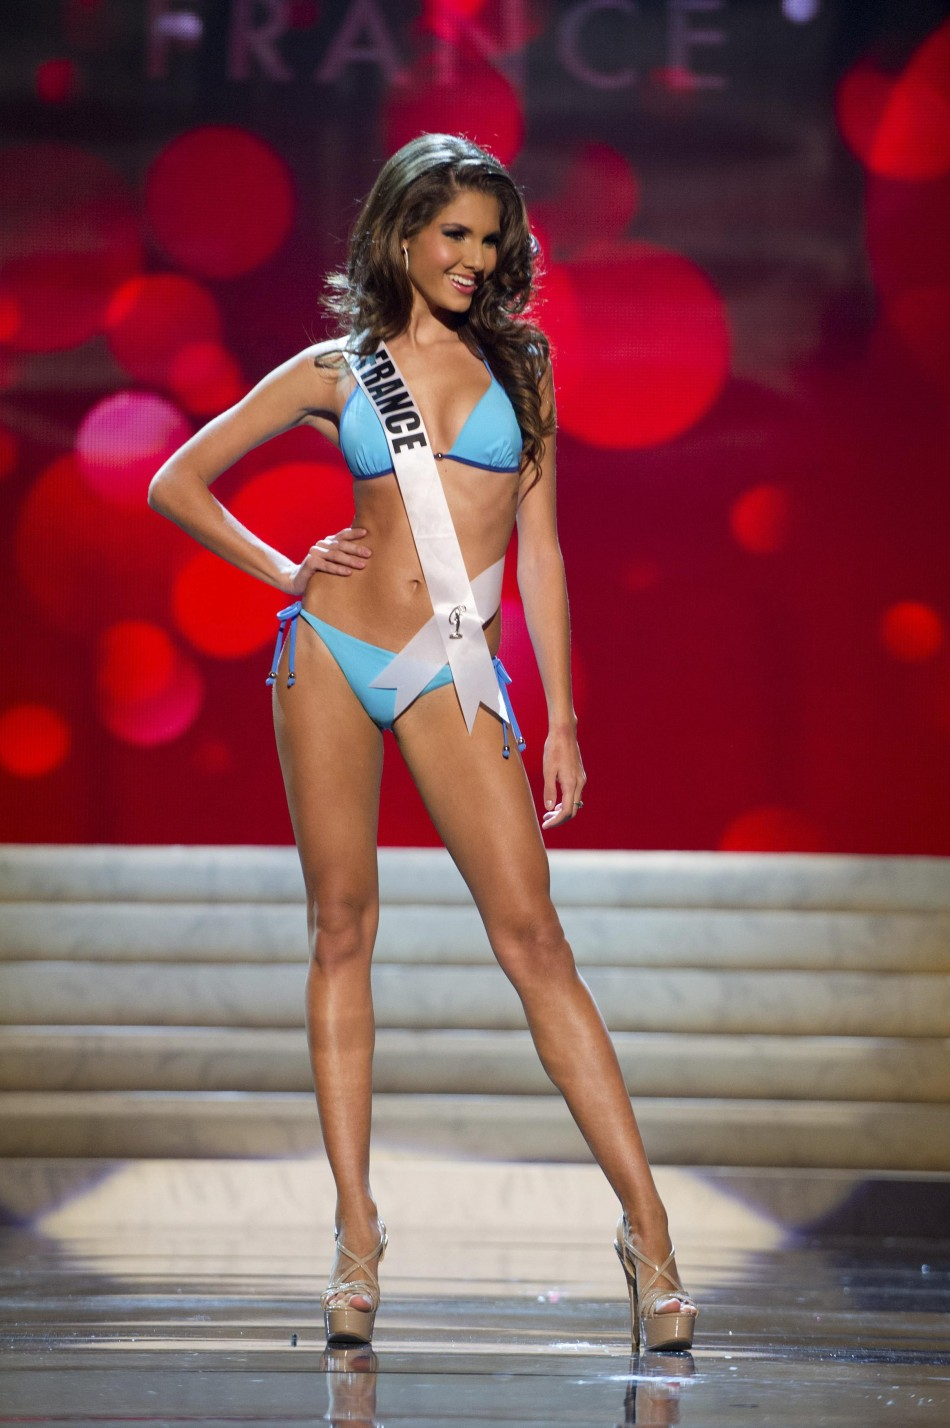 Miss France Delphine Wespiser at the Swimsuit Competition of the 2012 Miss Universe Presentation Show at PH Live in Las Vegas